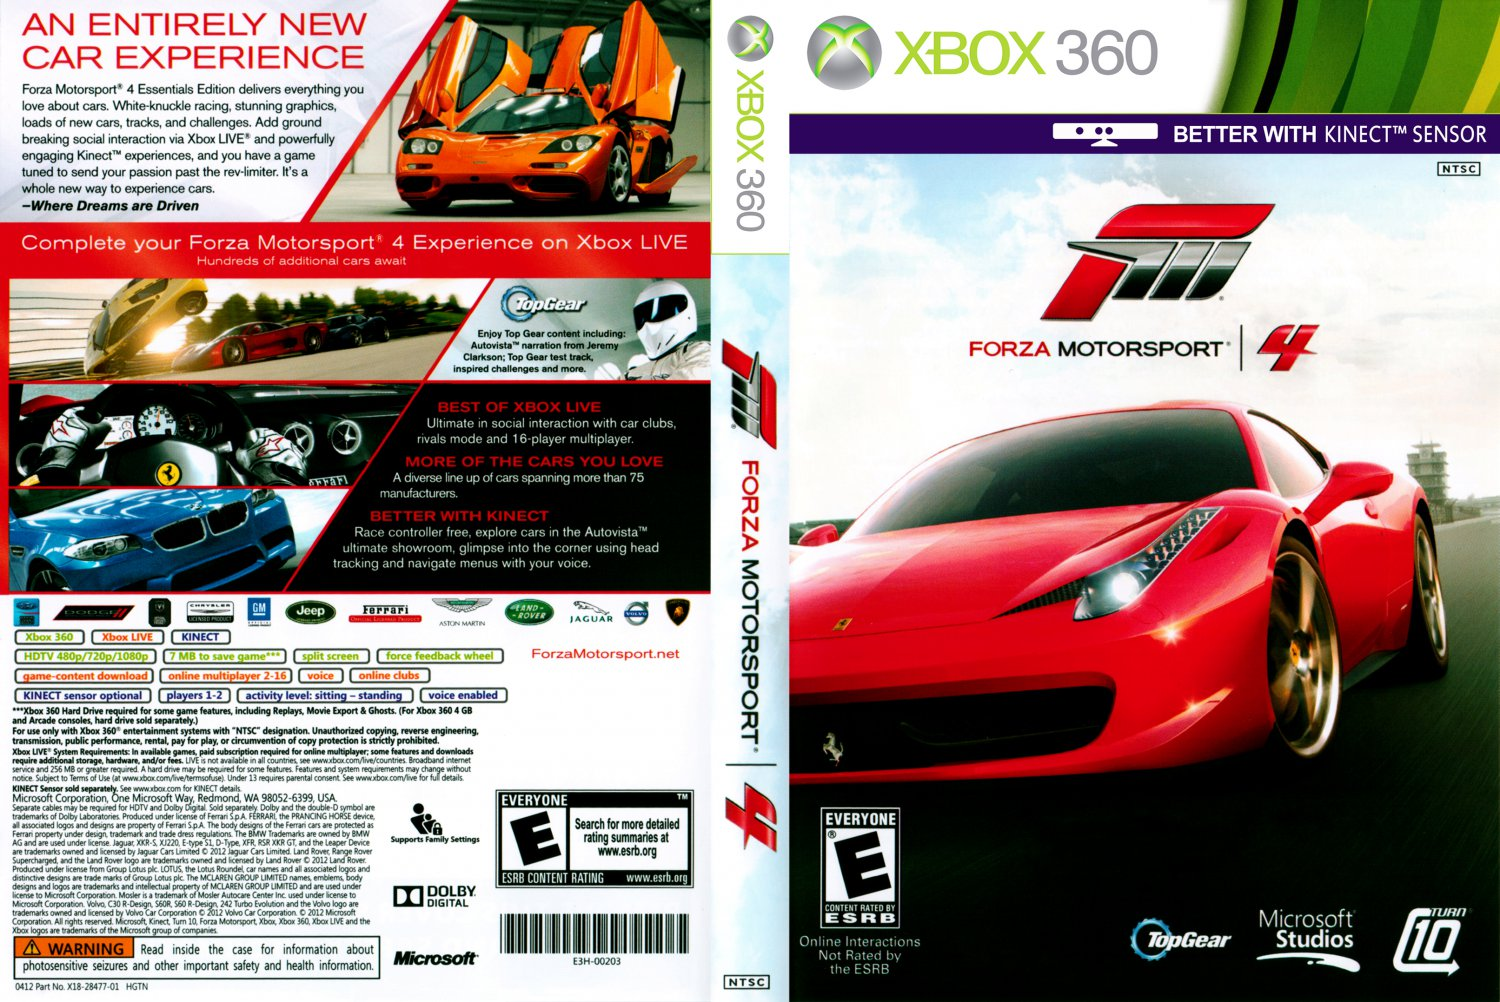 forza motorsport 4 xbox 360 game covers forza motorsport 4 dvd ntsc f1 dvd covers. Black Bedroom Furniture Sets. Home Design Ideas